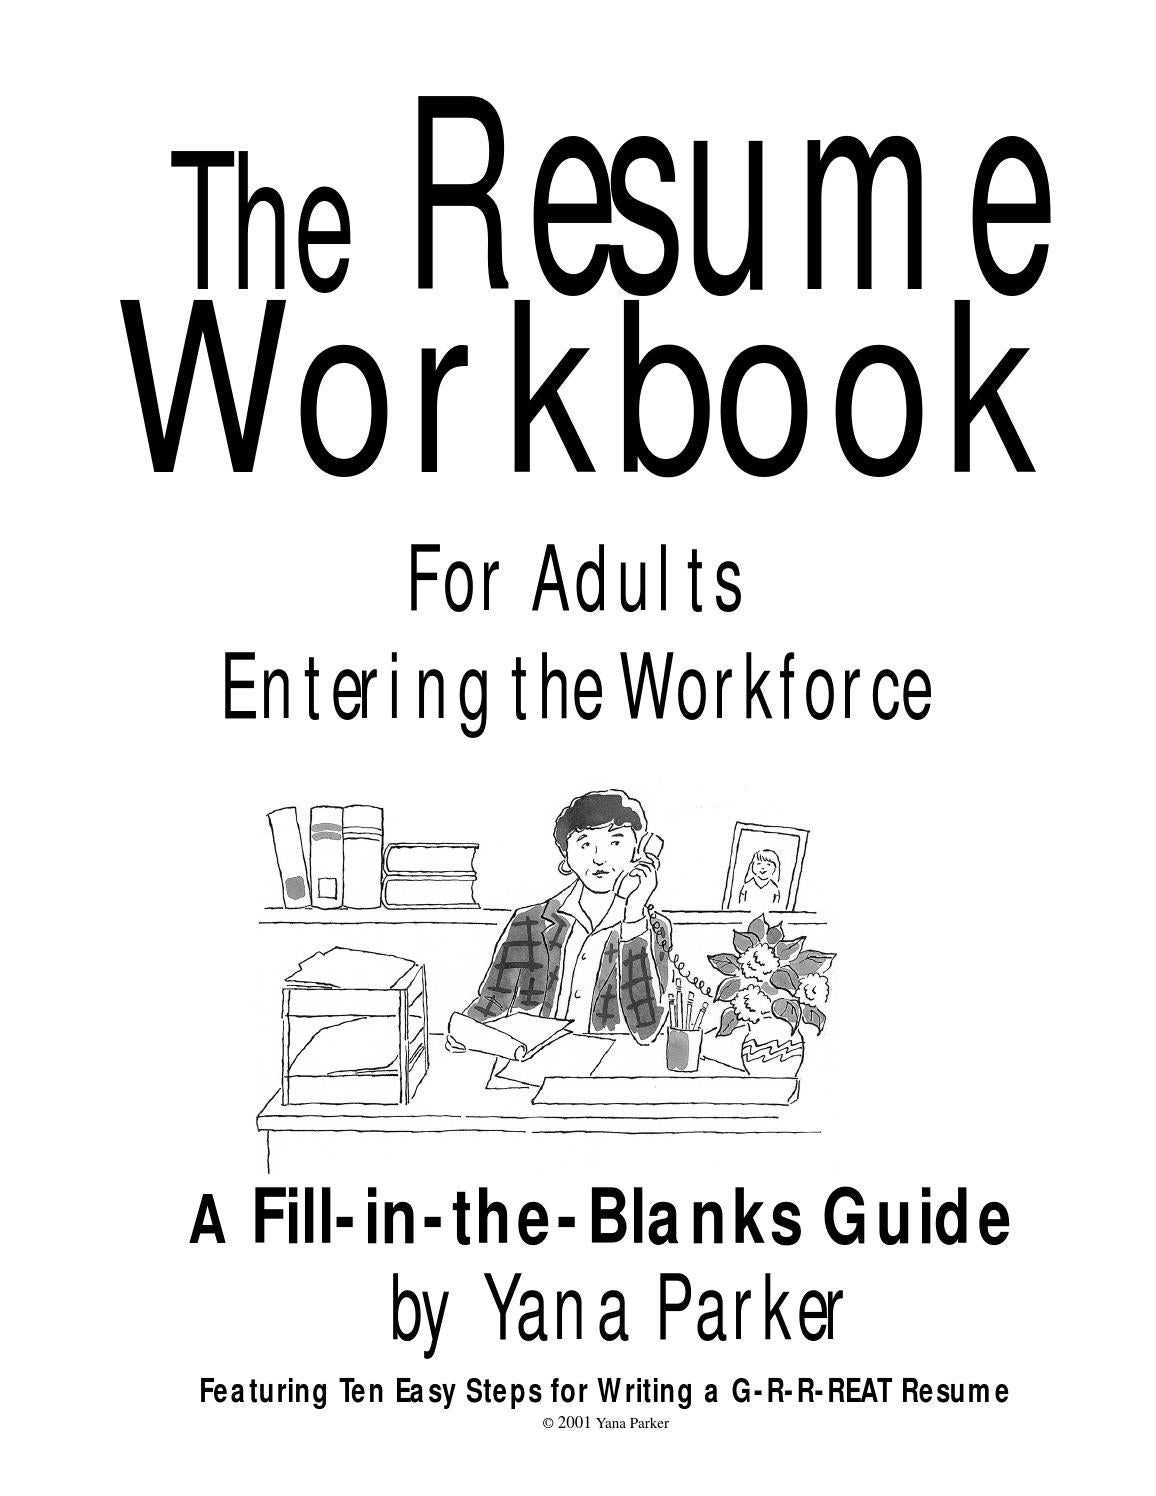 The resume workbook for adults entering the workforce by